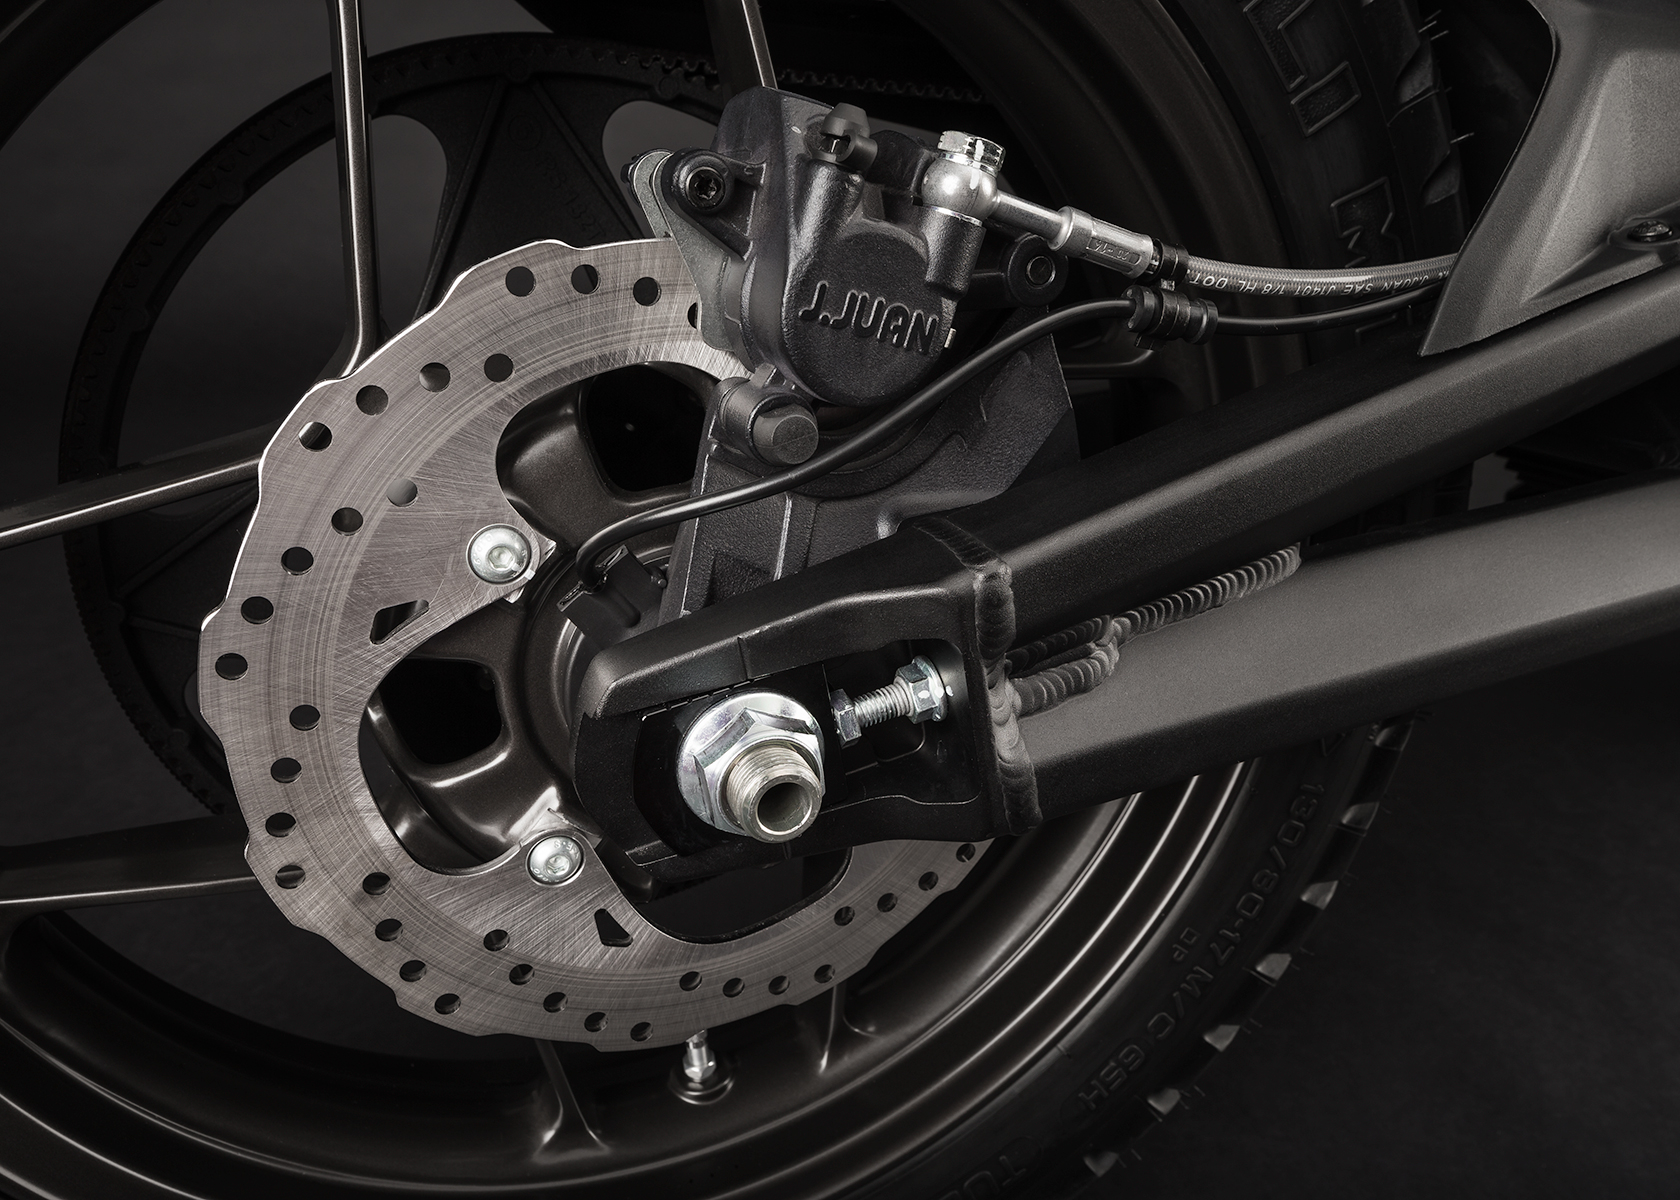 2015 Zero DS Electric Motorcycle: Rear Brake